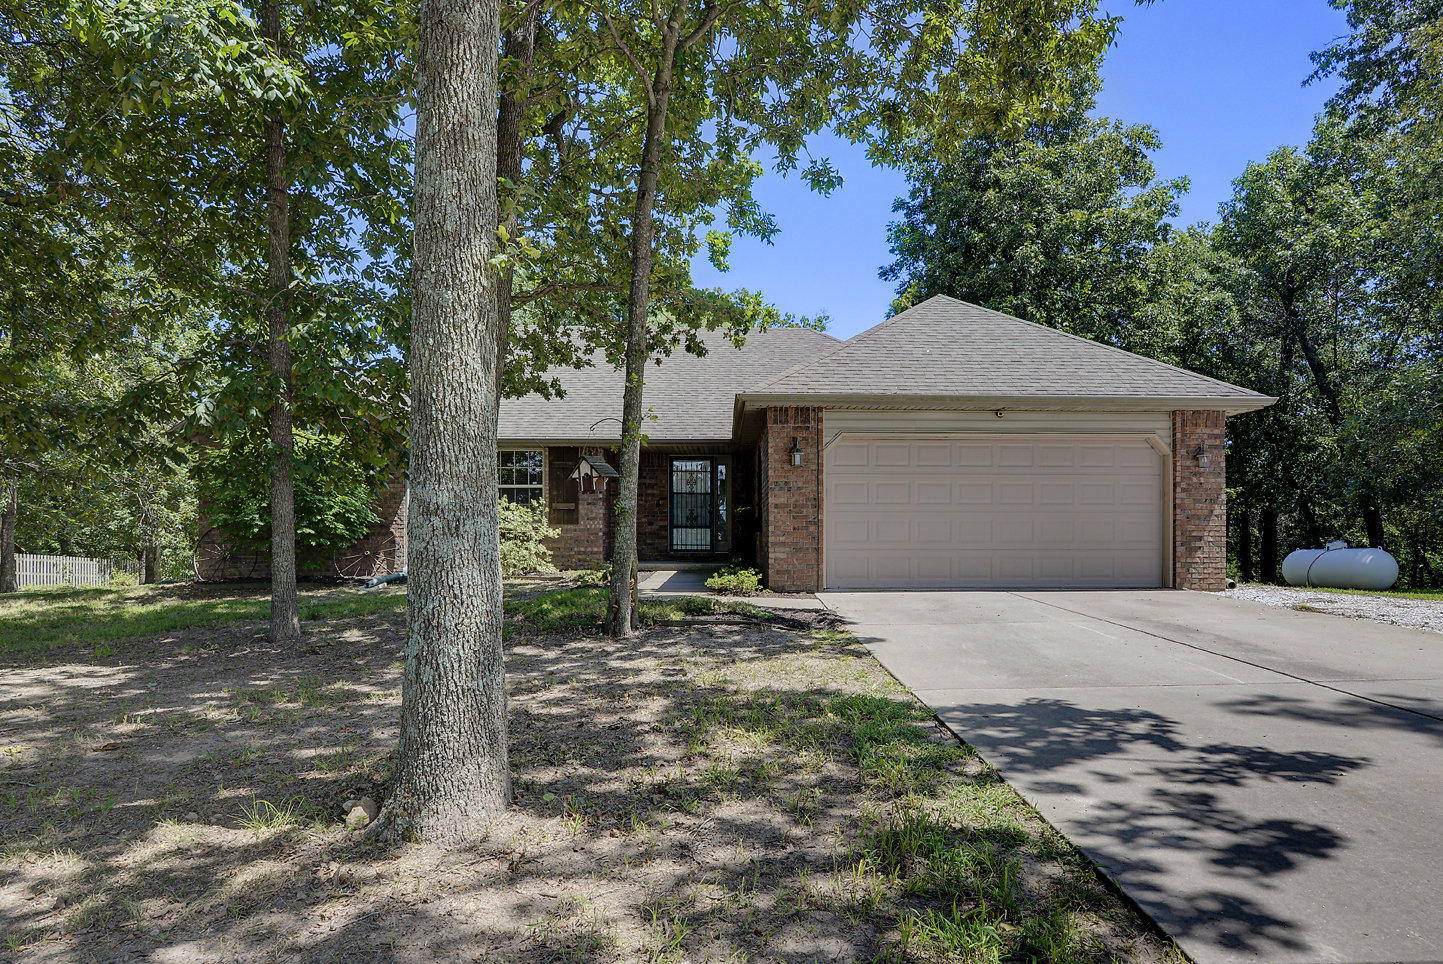 468 South Metzletein Road Clever, MO 65631